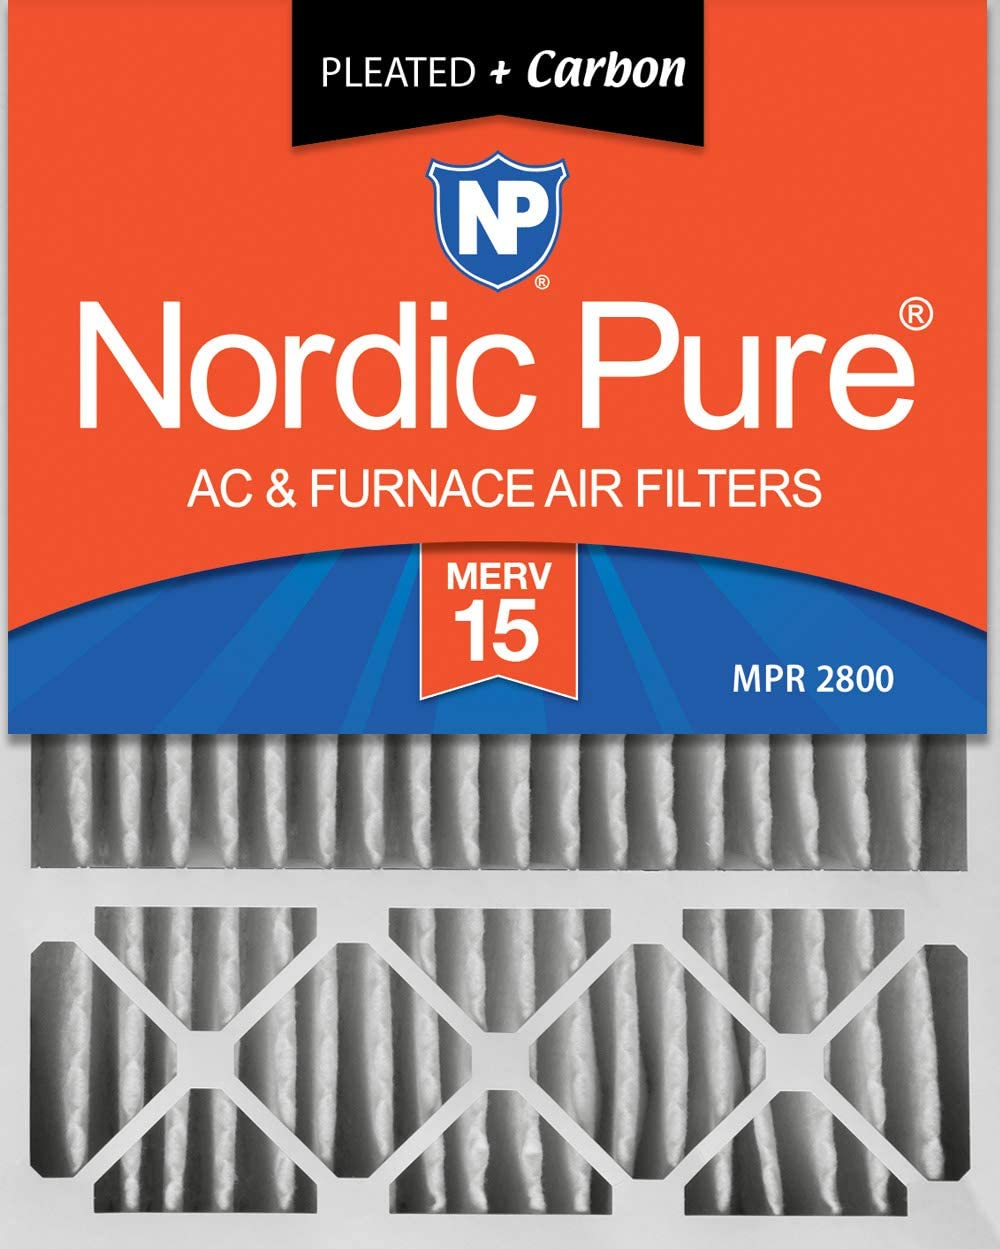 Nordic Pure 20x25x5 (4-3/8 Actual Depth) Lennox X6675 Replacement Plus AC Furnace Air Filter, 1 PACK, MERV 15 + Carbon